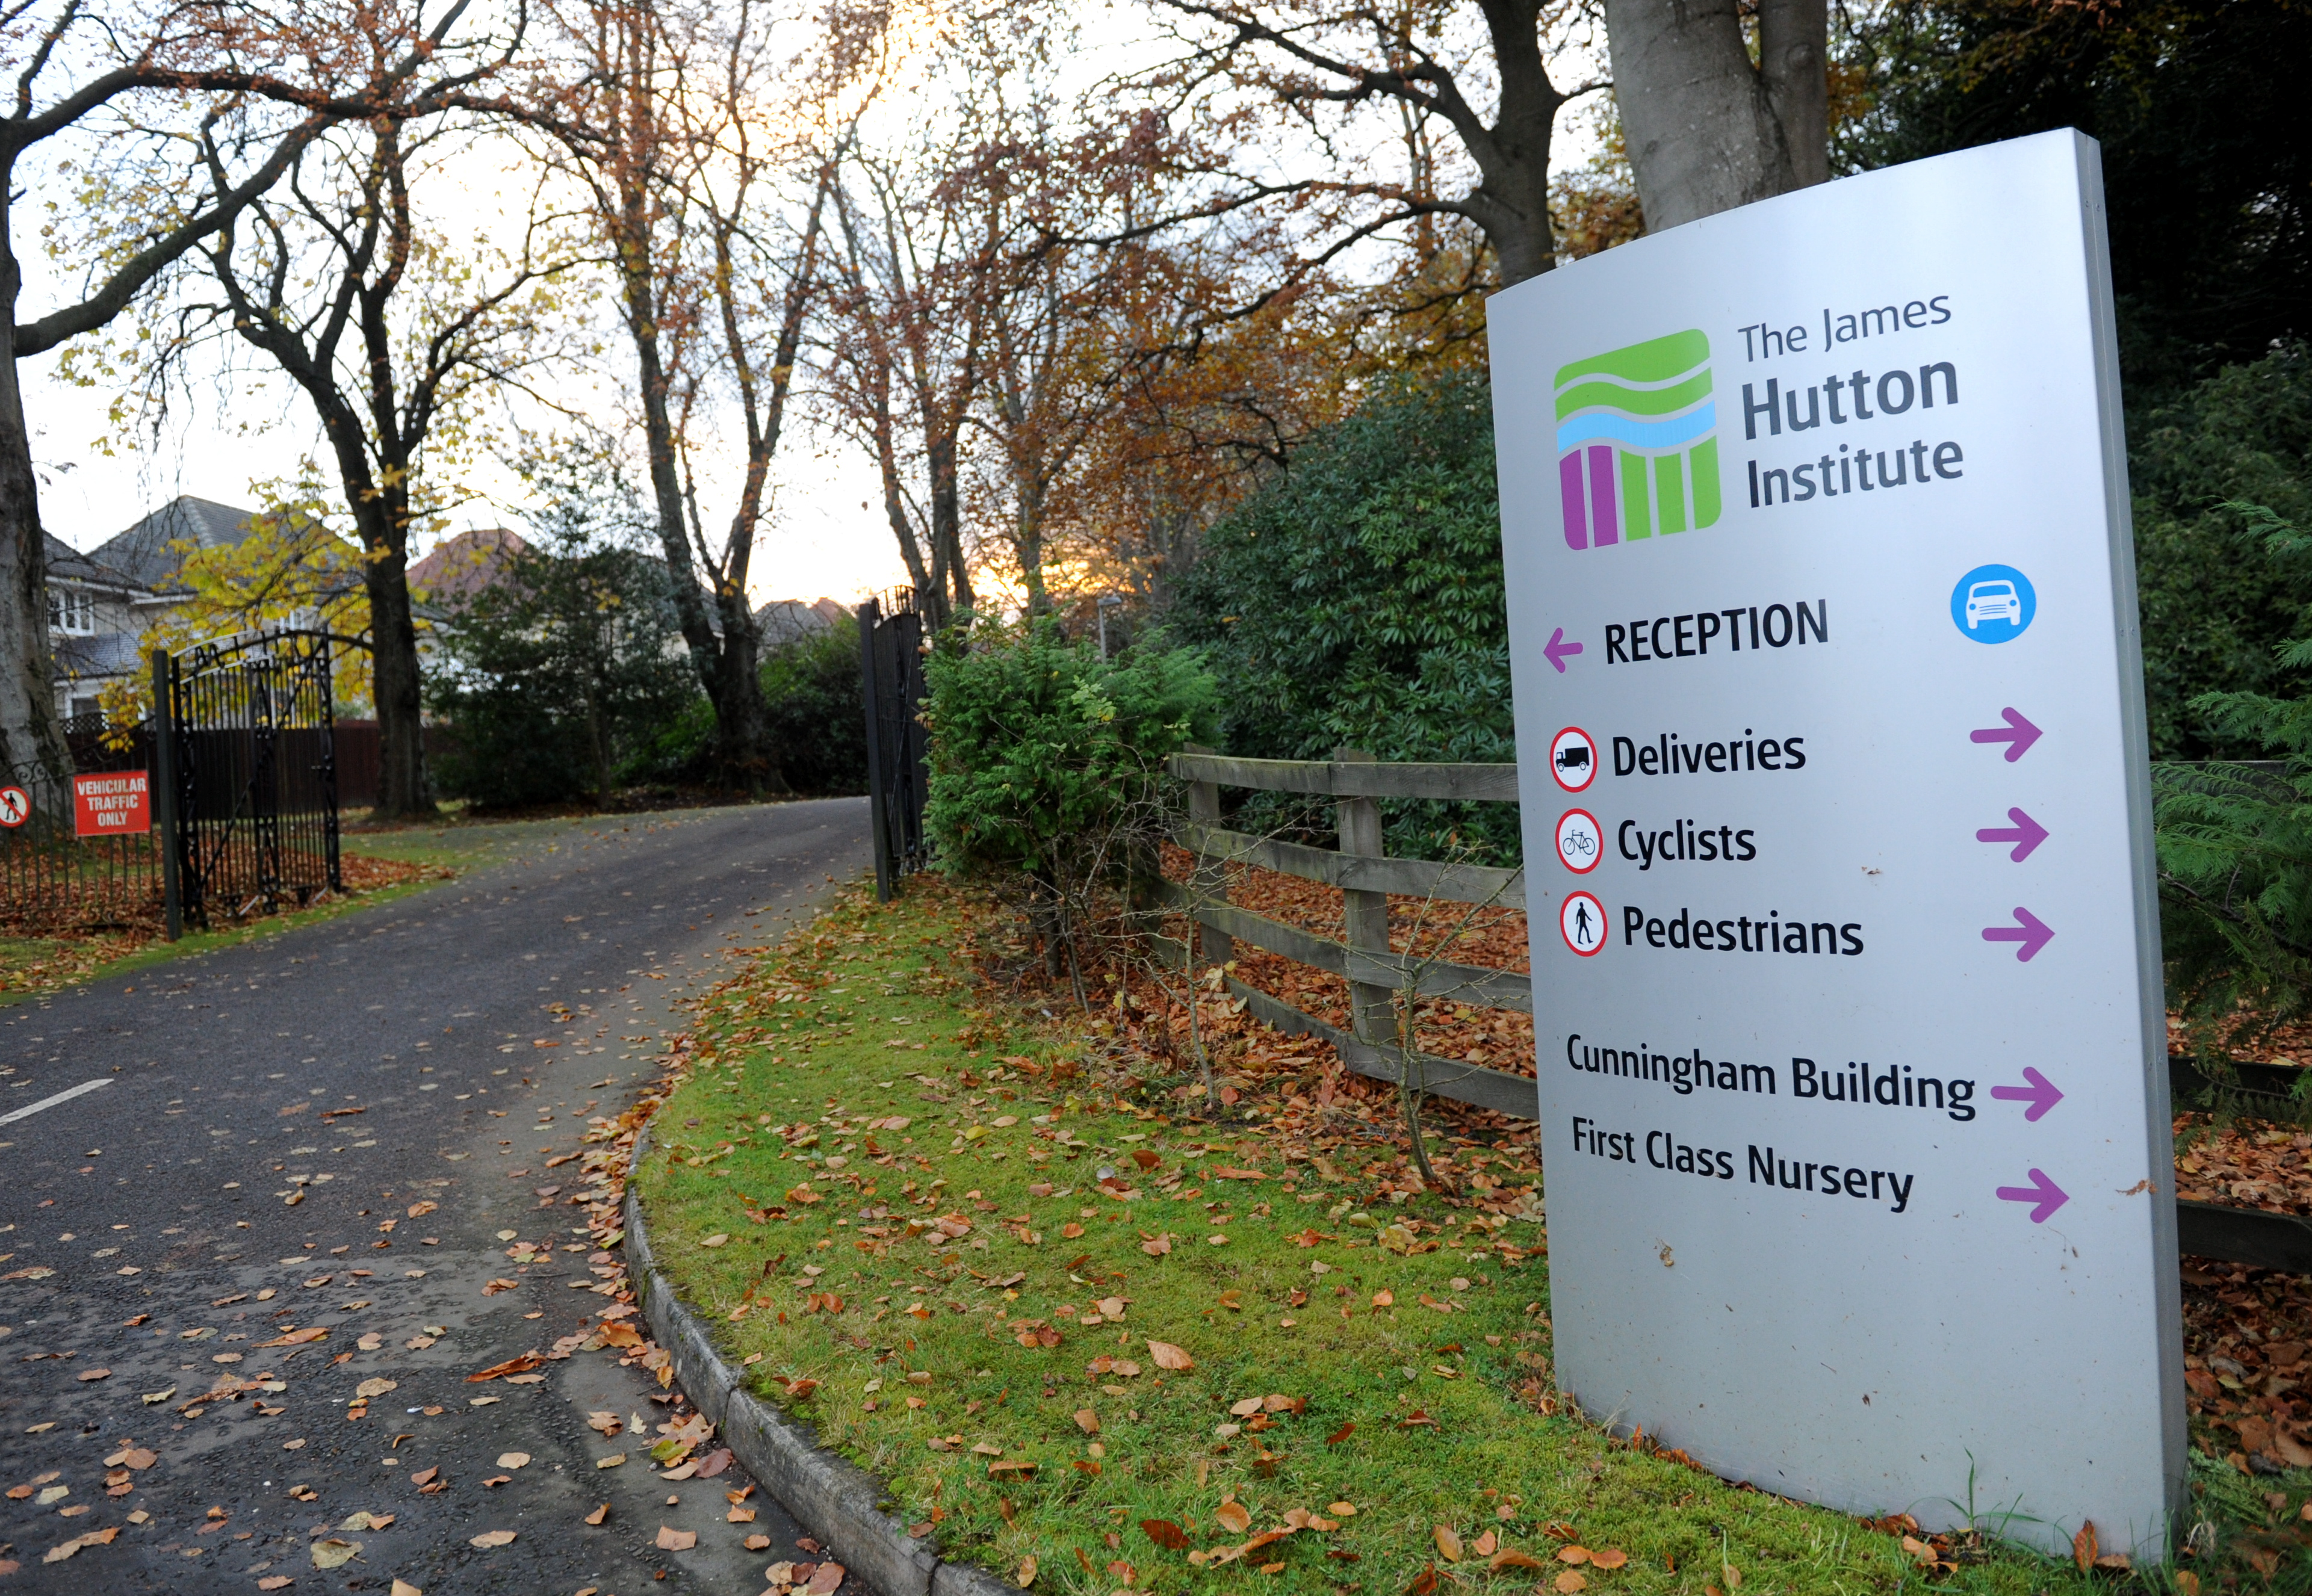 Nominees will attend a ceremony at the James Hutton Institute.